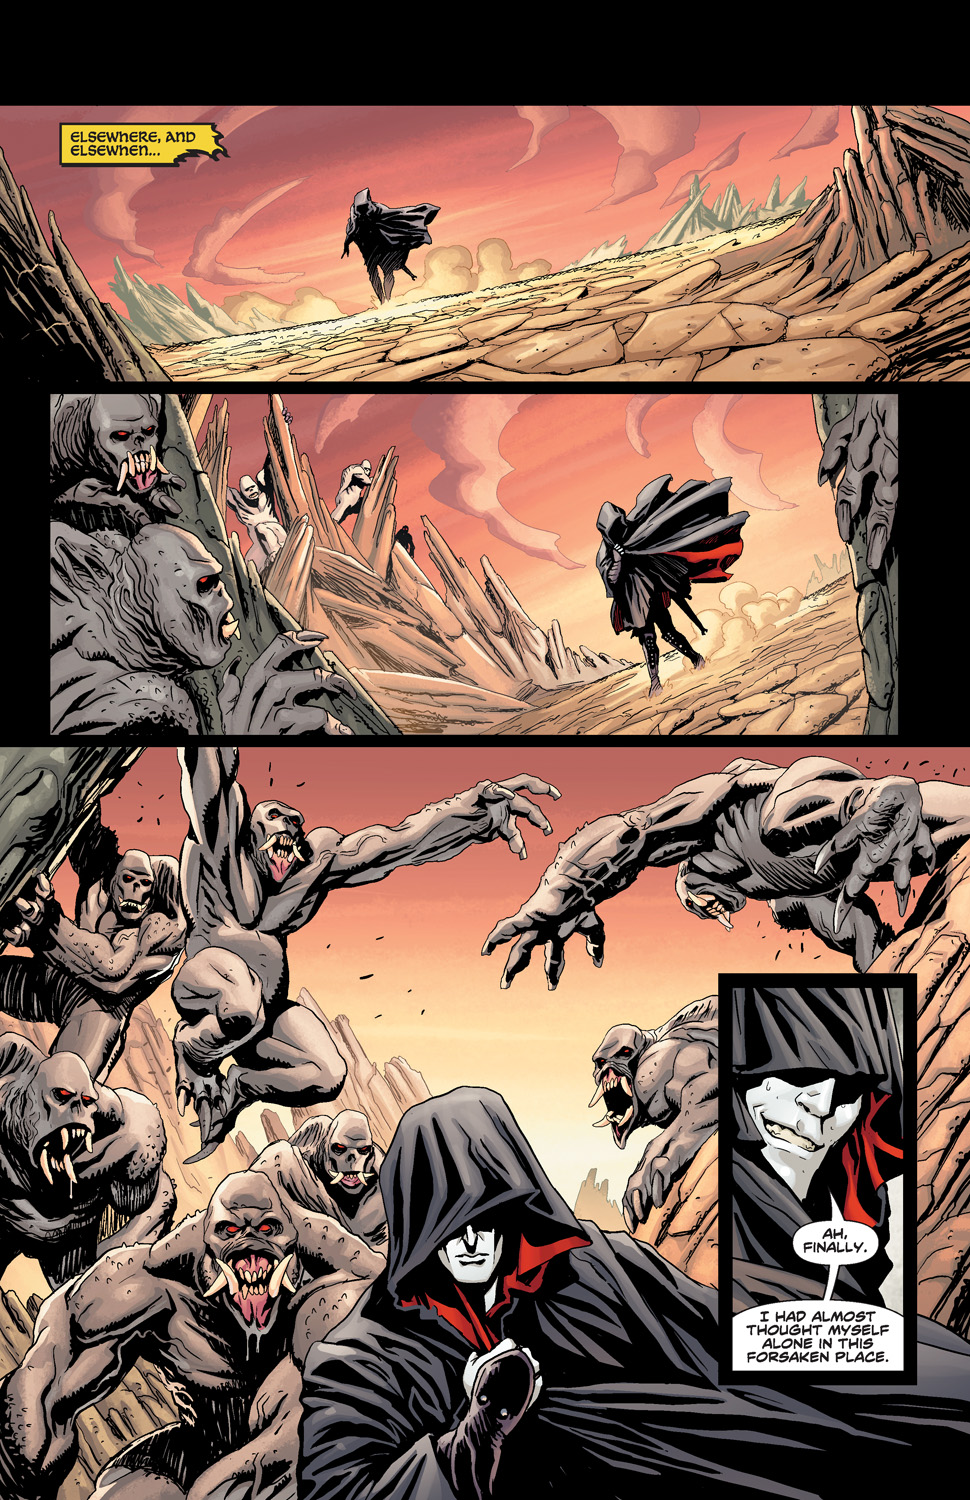 ELRIC_THE_BALANCE_LOST_FCBD_Preview_Page_1 Michael Moorcock's ELRIC: THE BALANCE LOST comes to life this May